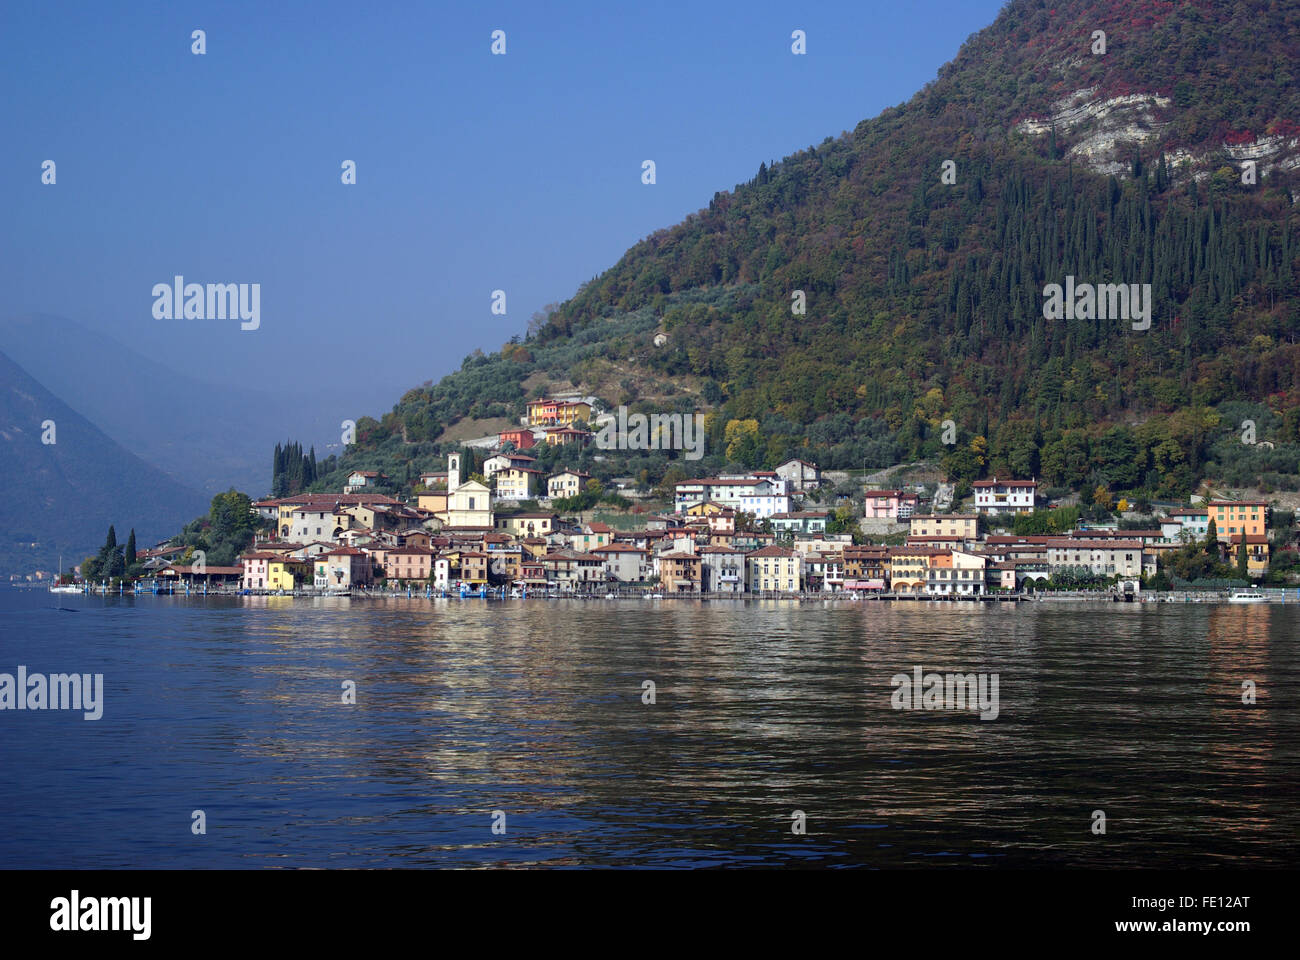 Town of Peschiera Maraglio. Country viewed from the Iseo lake in Lombardy region of Italy - Stock Image